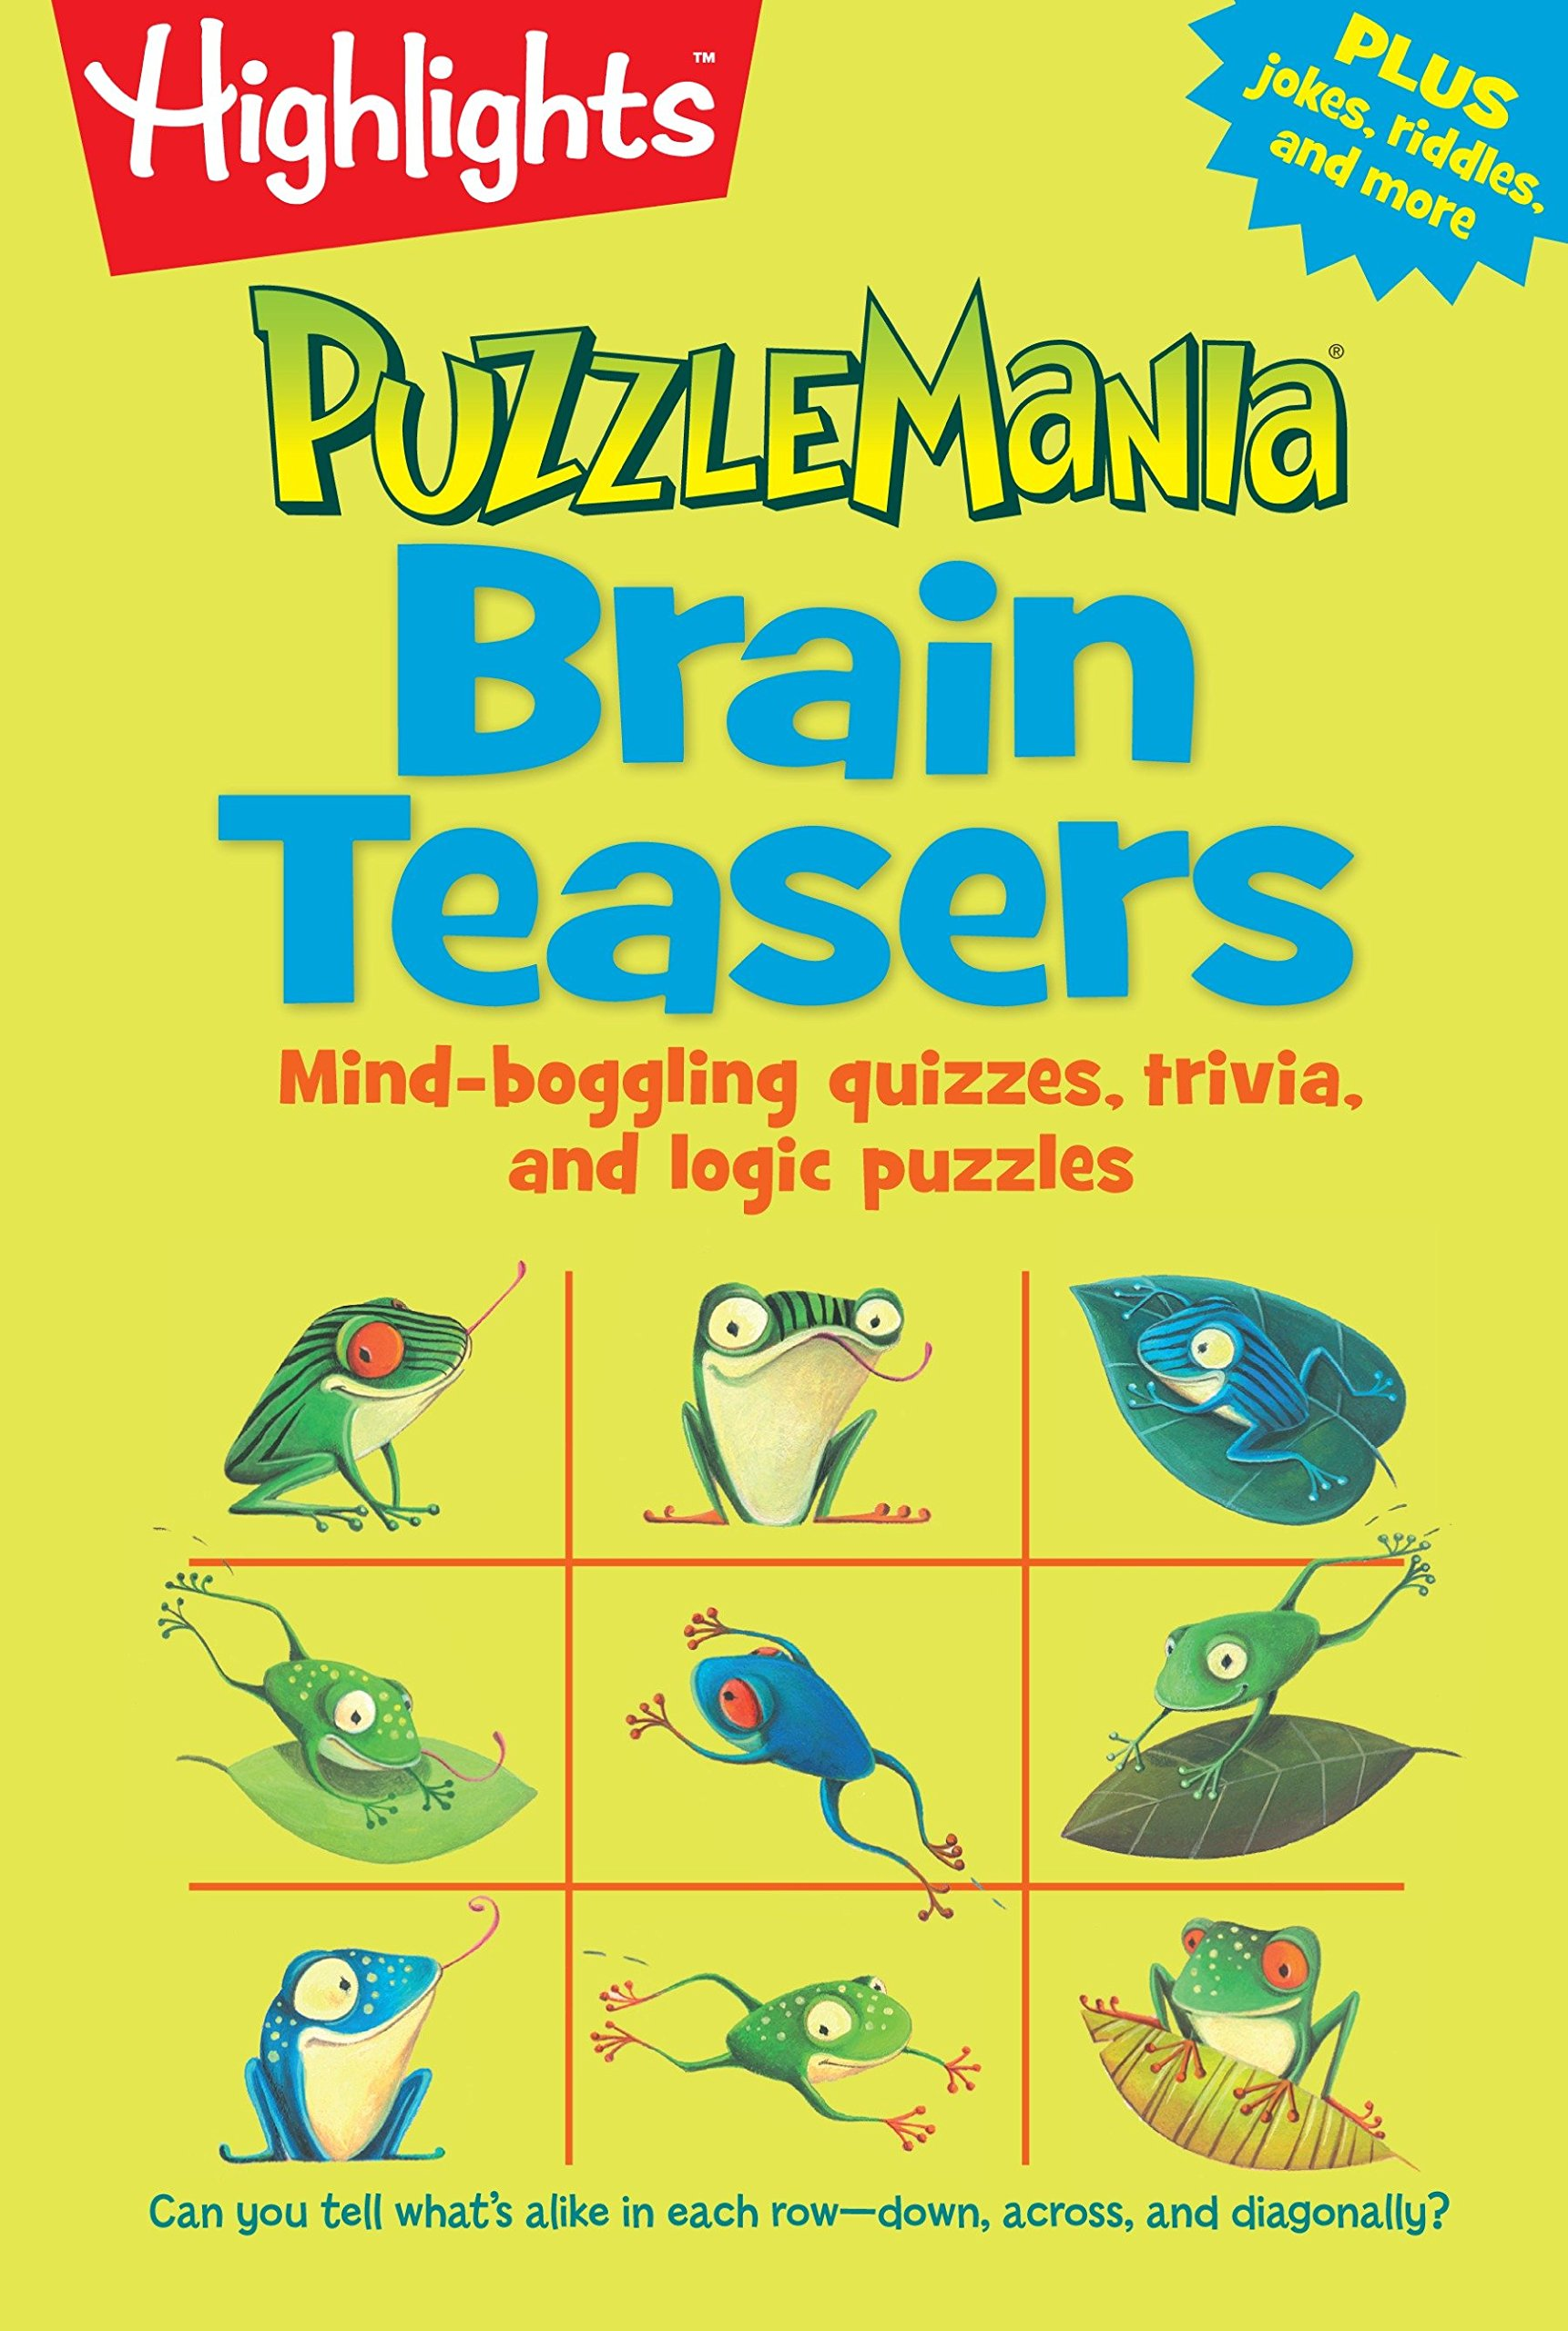 Brain Teasers: Mind-boggling quizzes, trivia, and logic puzzles  (HighlightsTM Puzzlemania® Puzzle Pads): Highlights: 9781629794228:  Amazon.com: Books